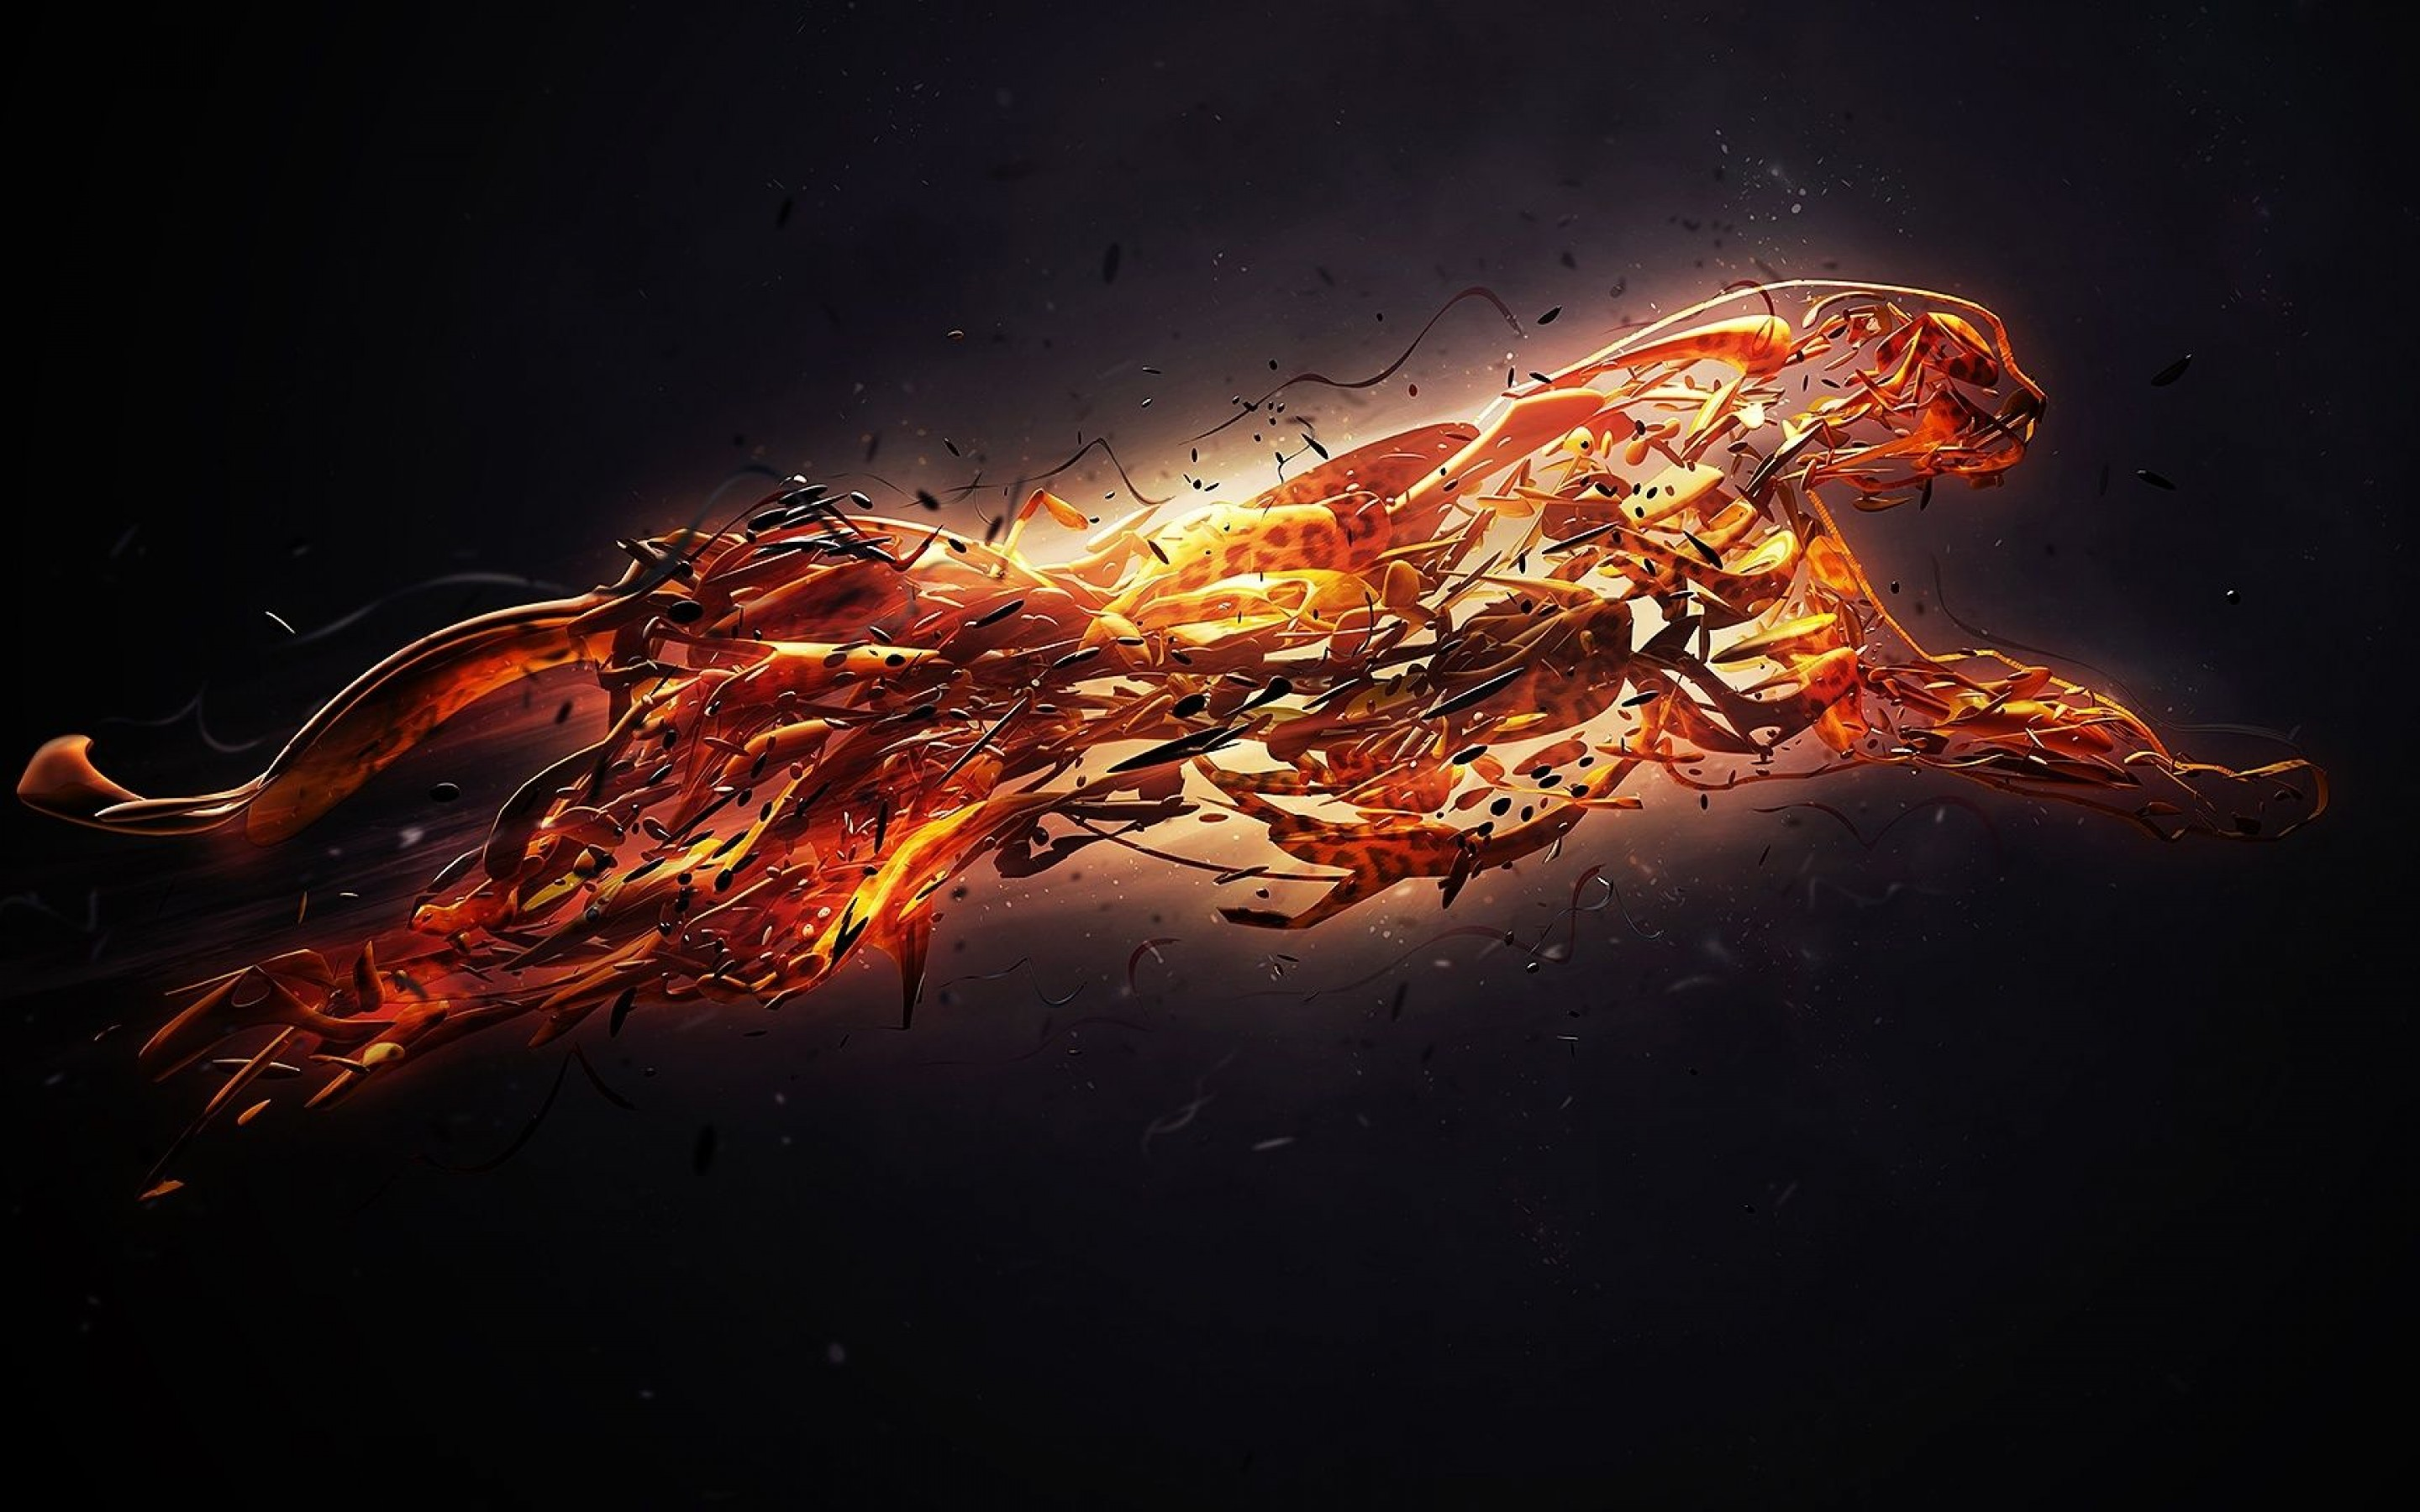 Fire Art Wallpaper